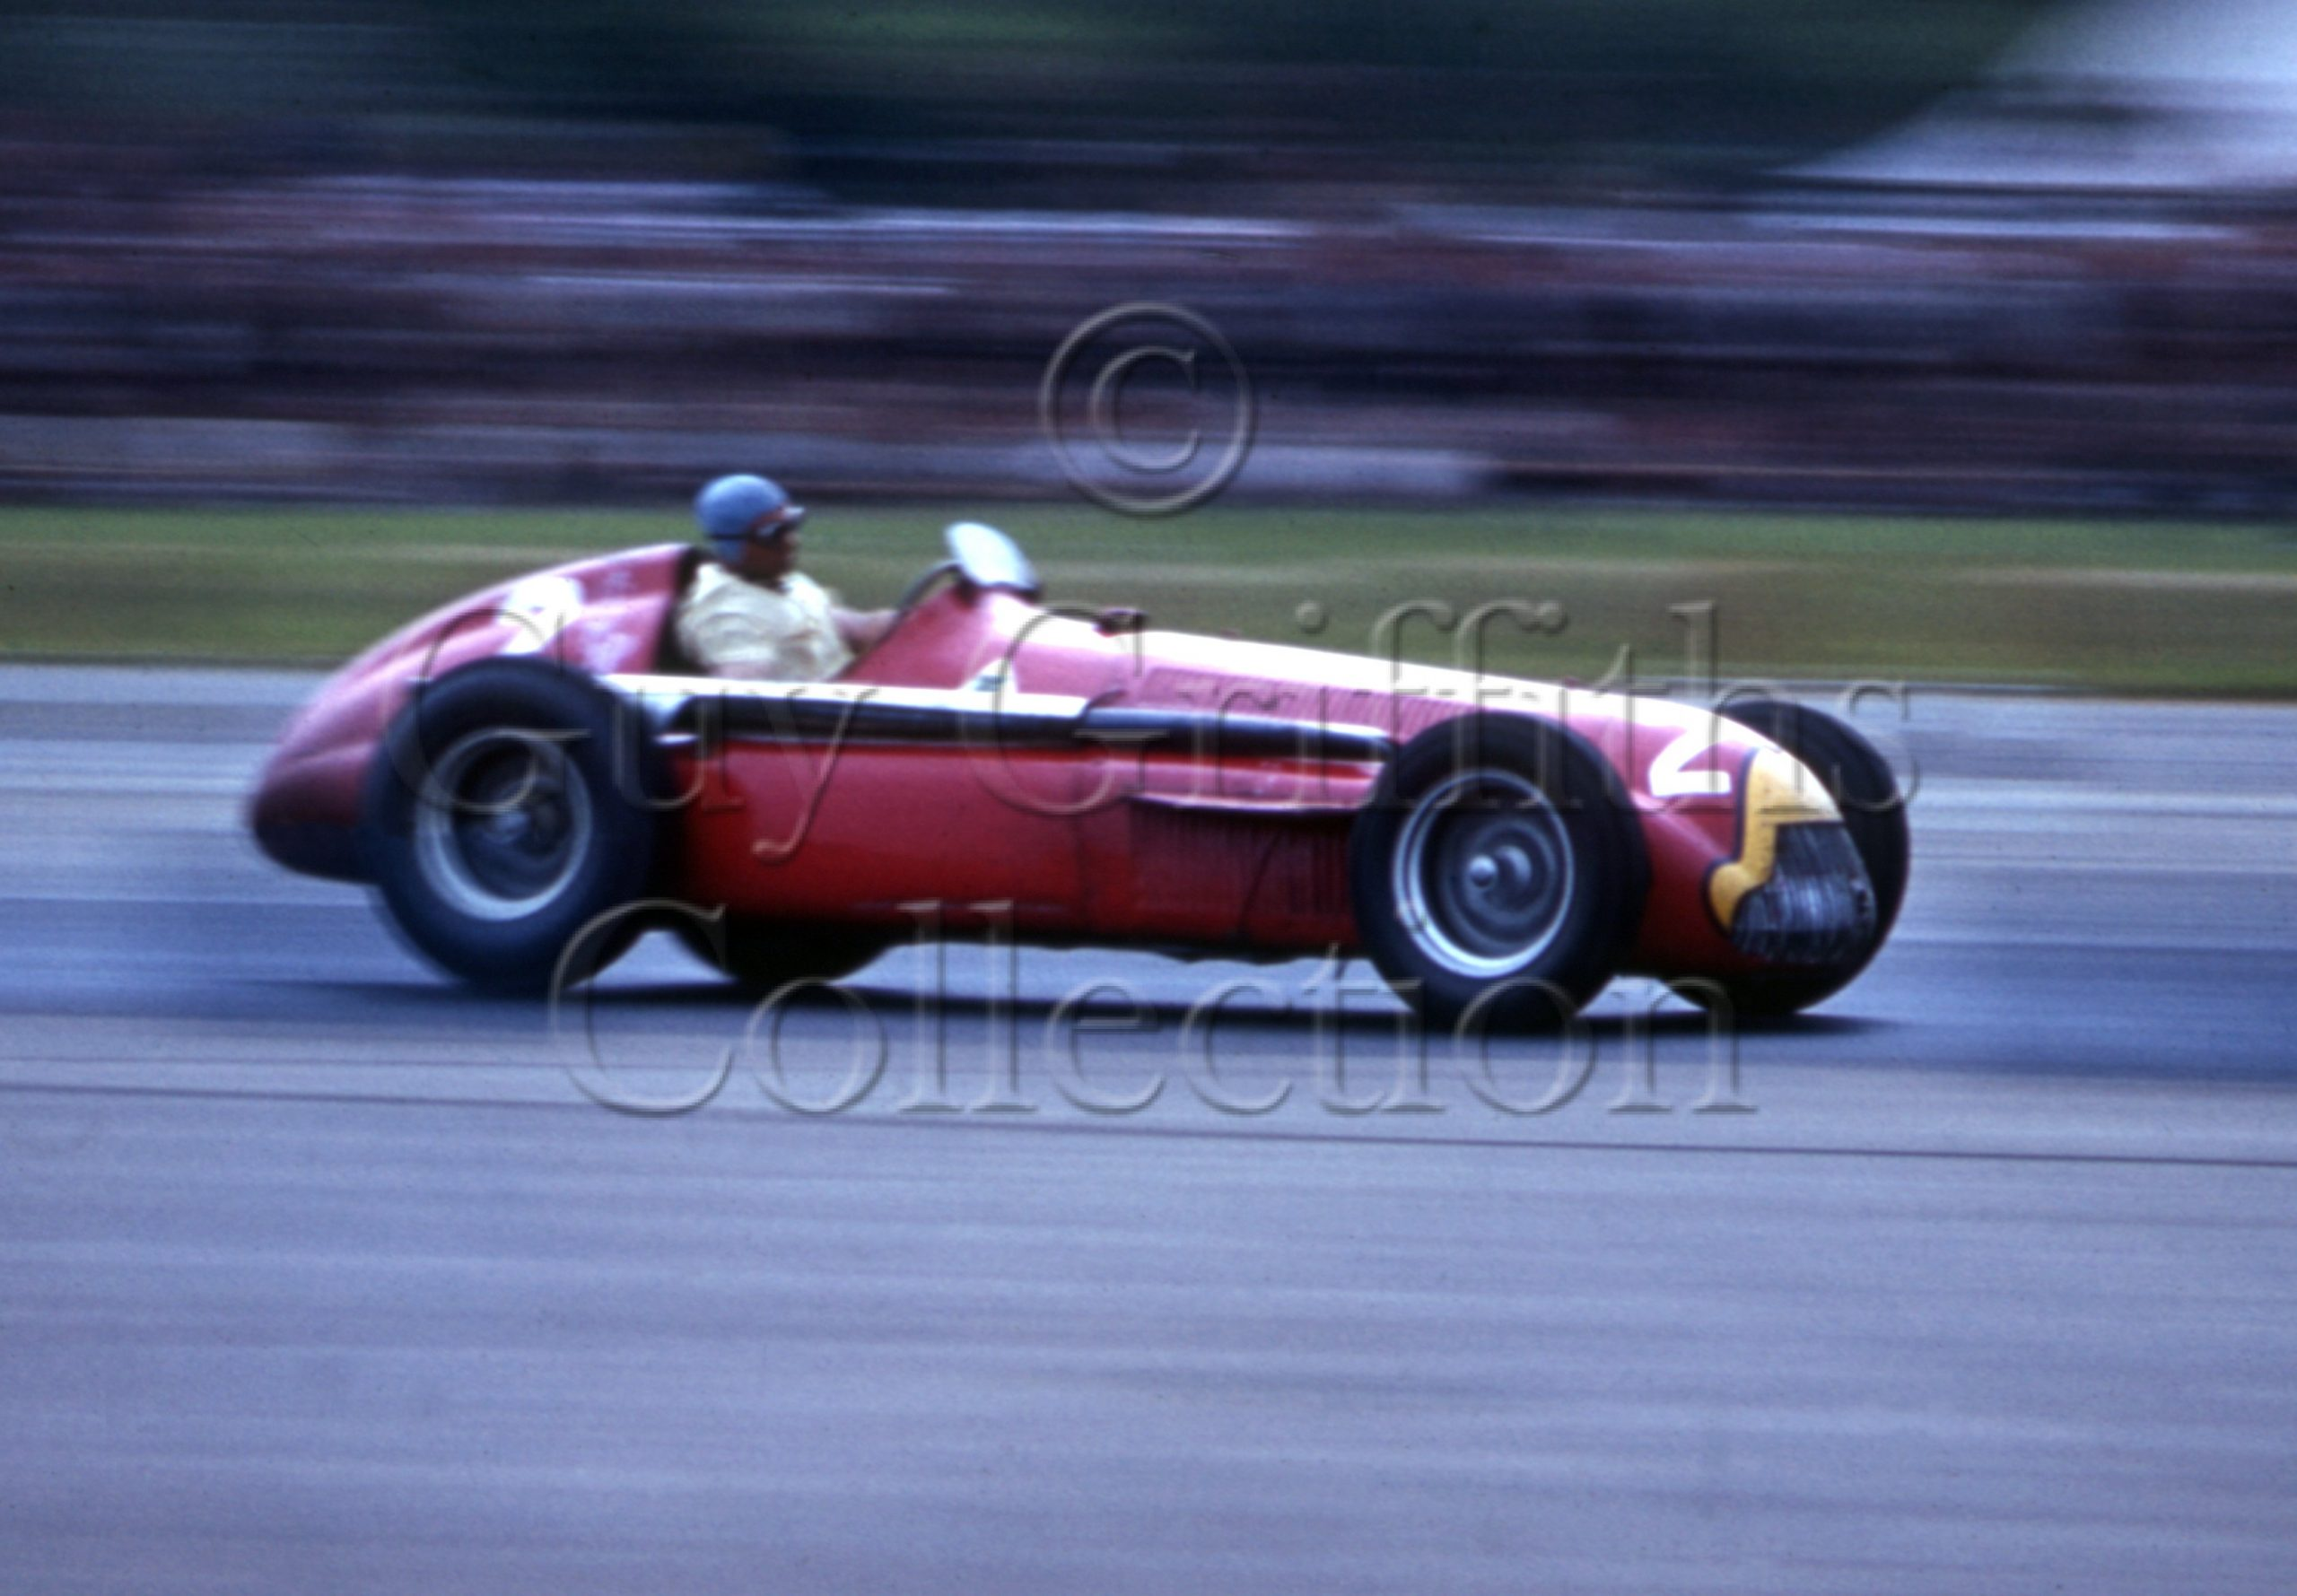 C-3-32–J-Fangio–Alfa-Romeo-158–Silverstone–14-07-1951.jpg - Guy Griffiths Collection